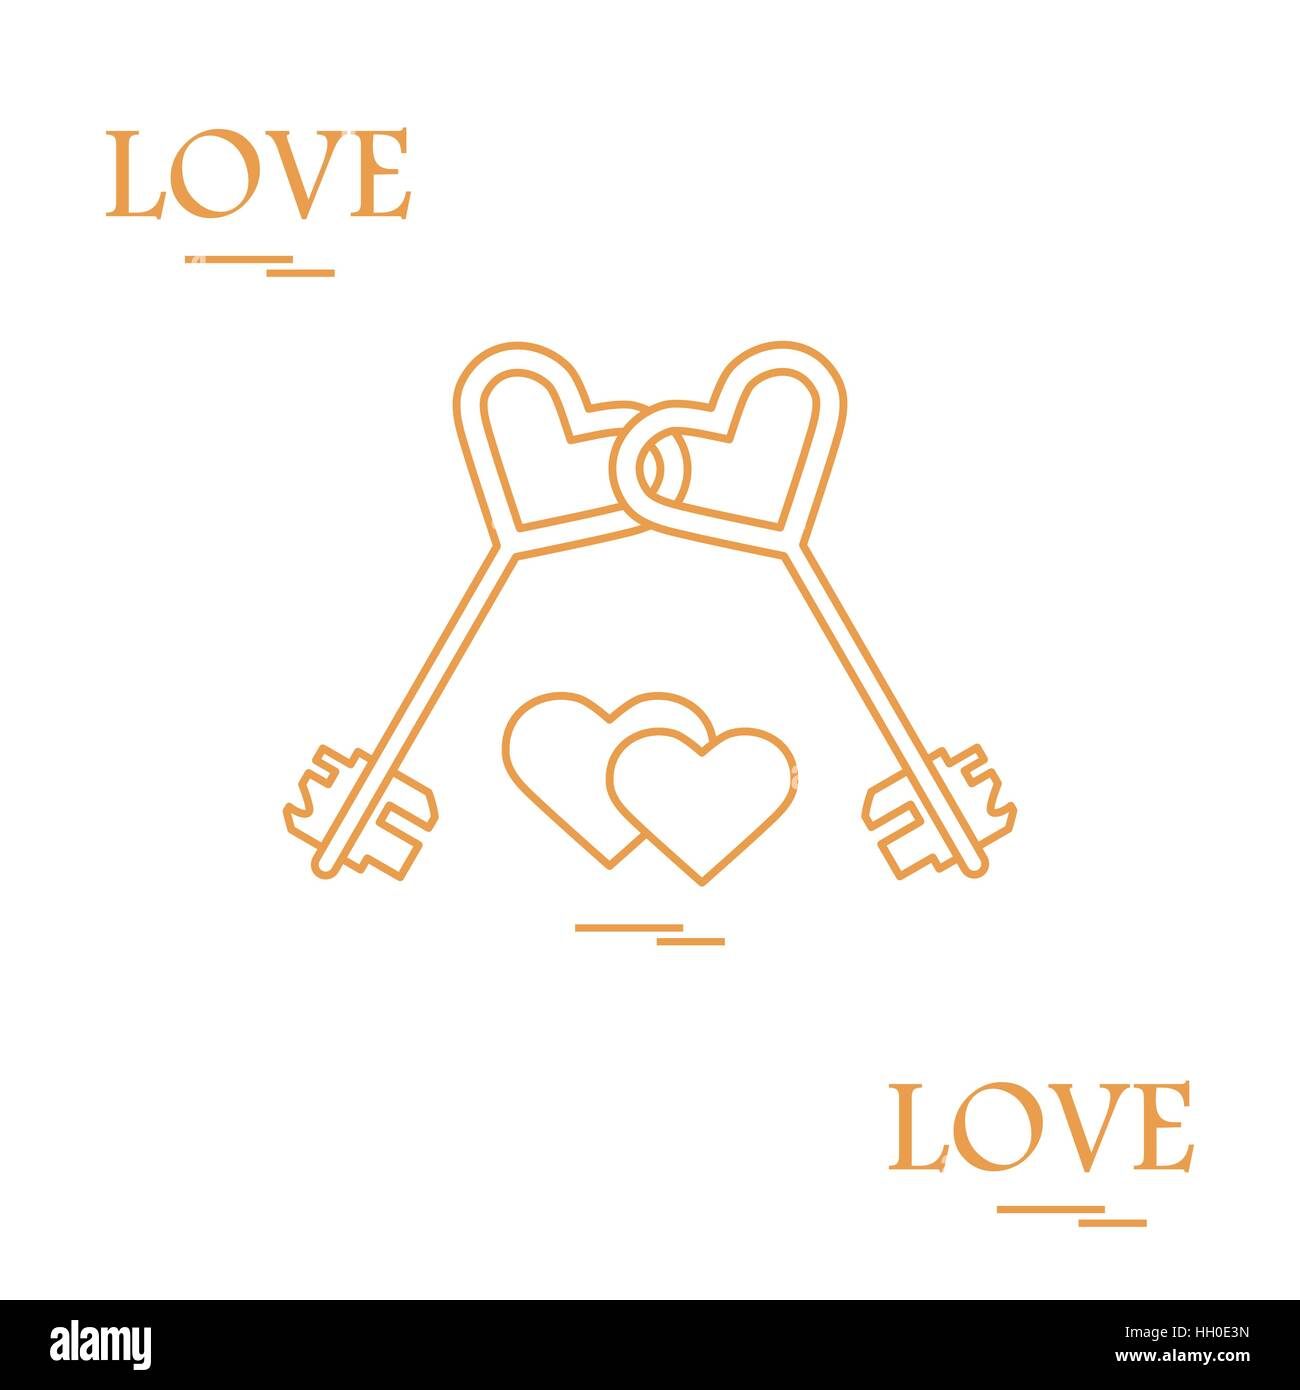 Cute Vector Illustration Of Love Symbols Heart Key Icon And Two